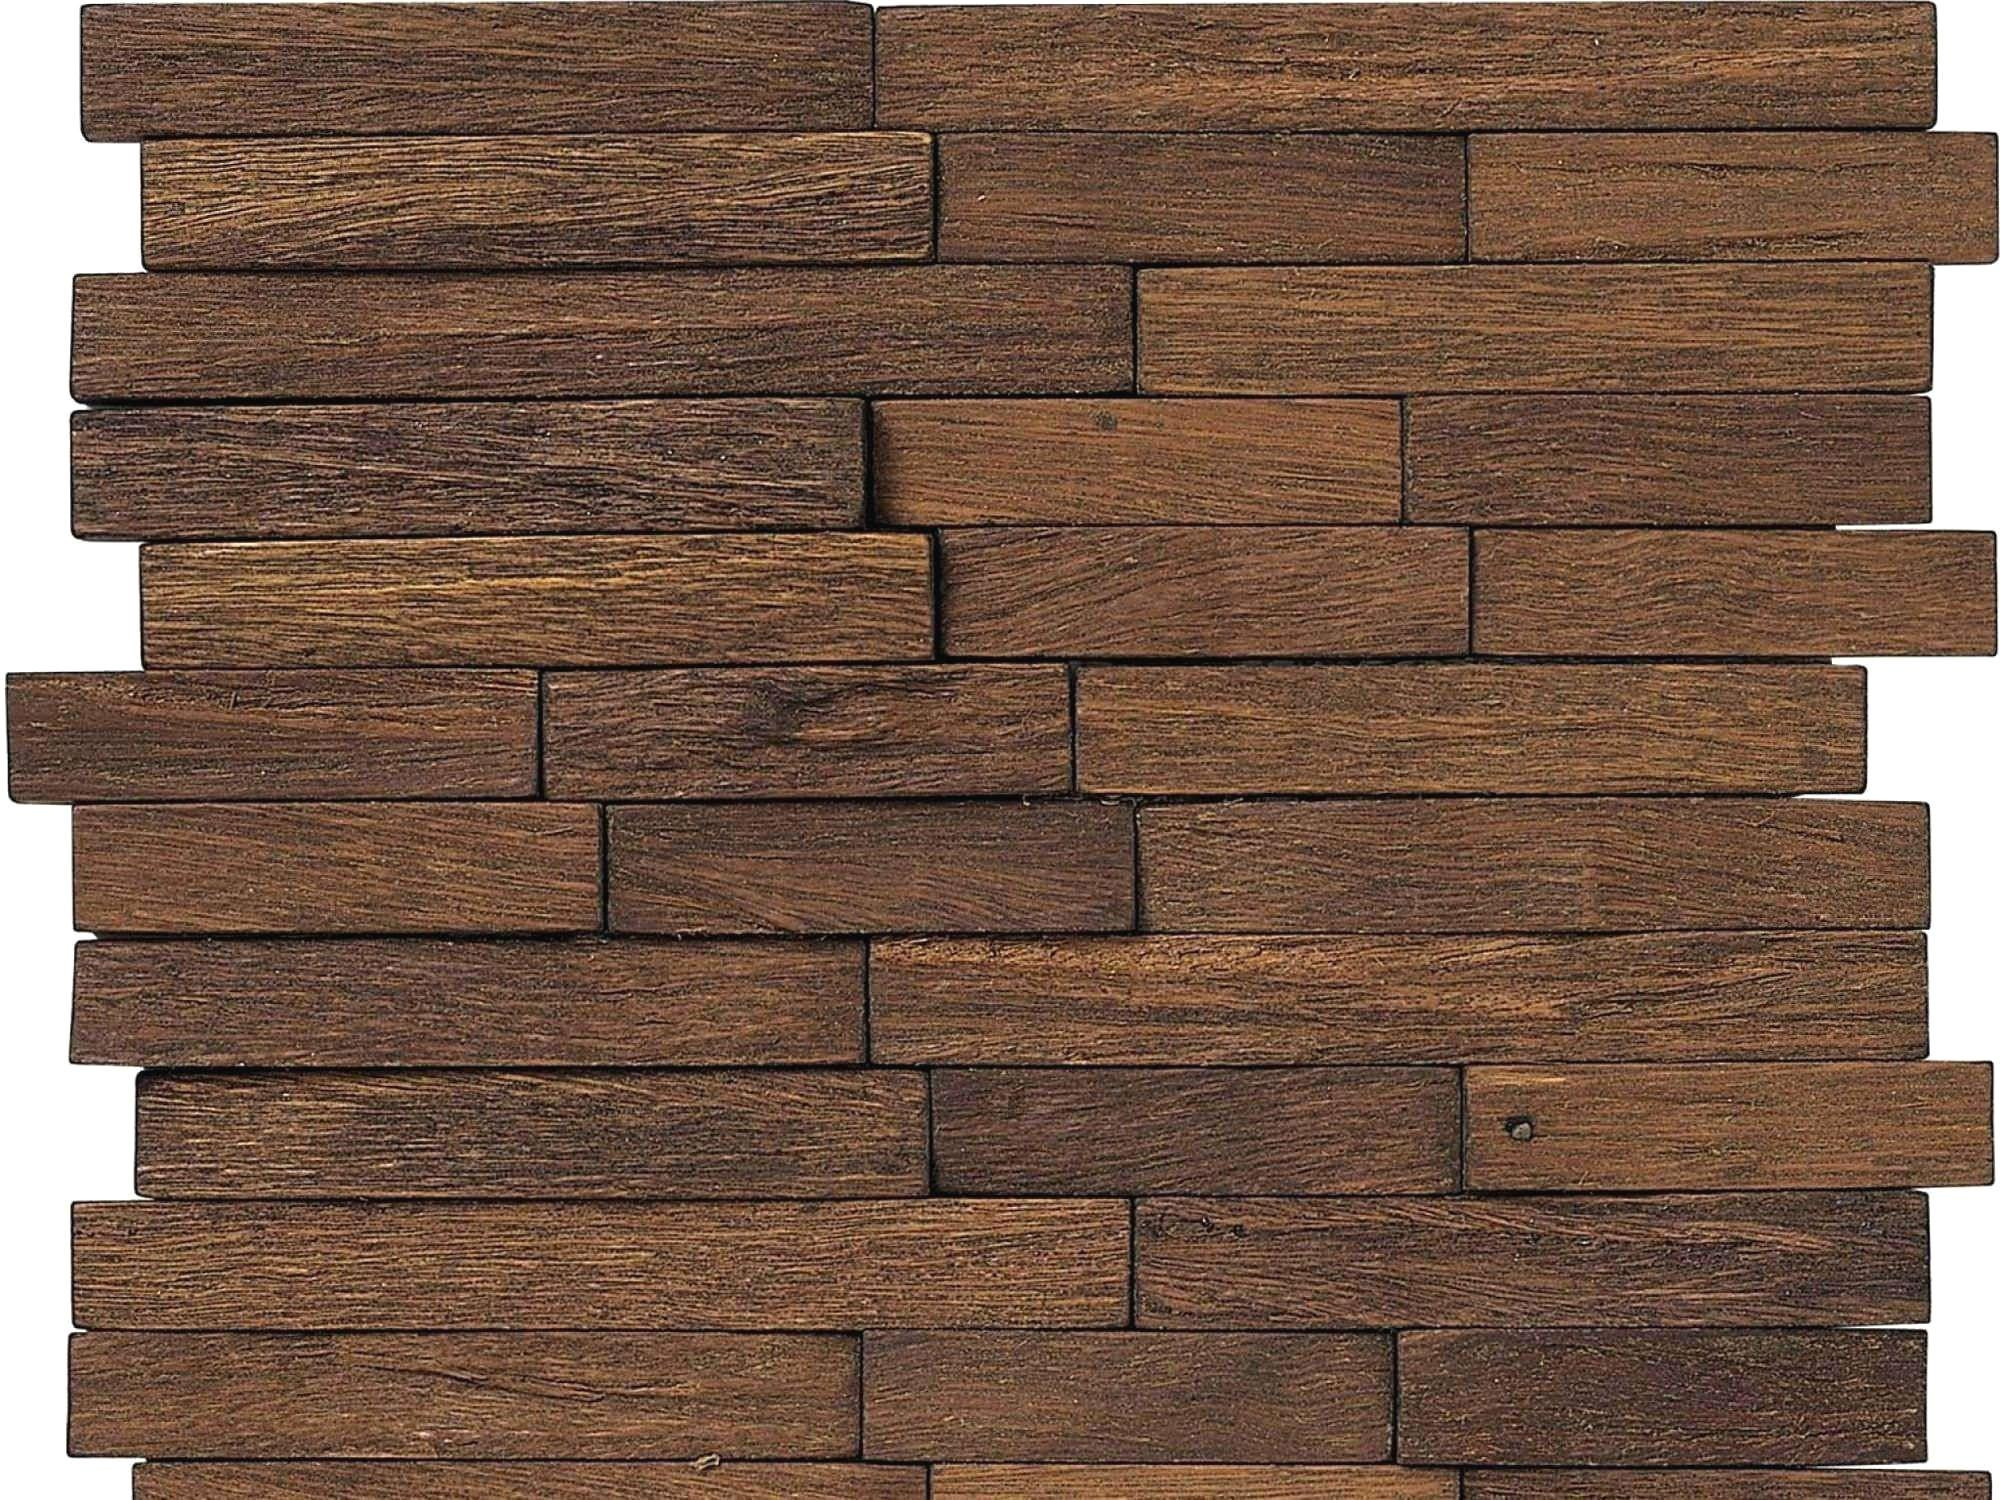 buy cheap hardwood flooring of 10 diy wood flooring collections economyinnbeebe com regarding diy home design new metal wall art panels fresh 1 kirkland wall decor home design 0d